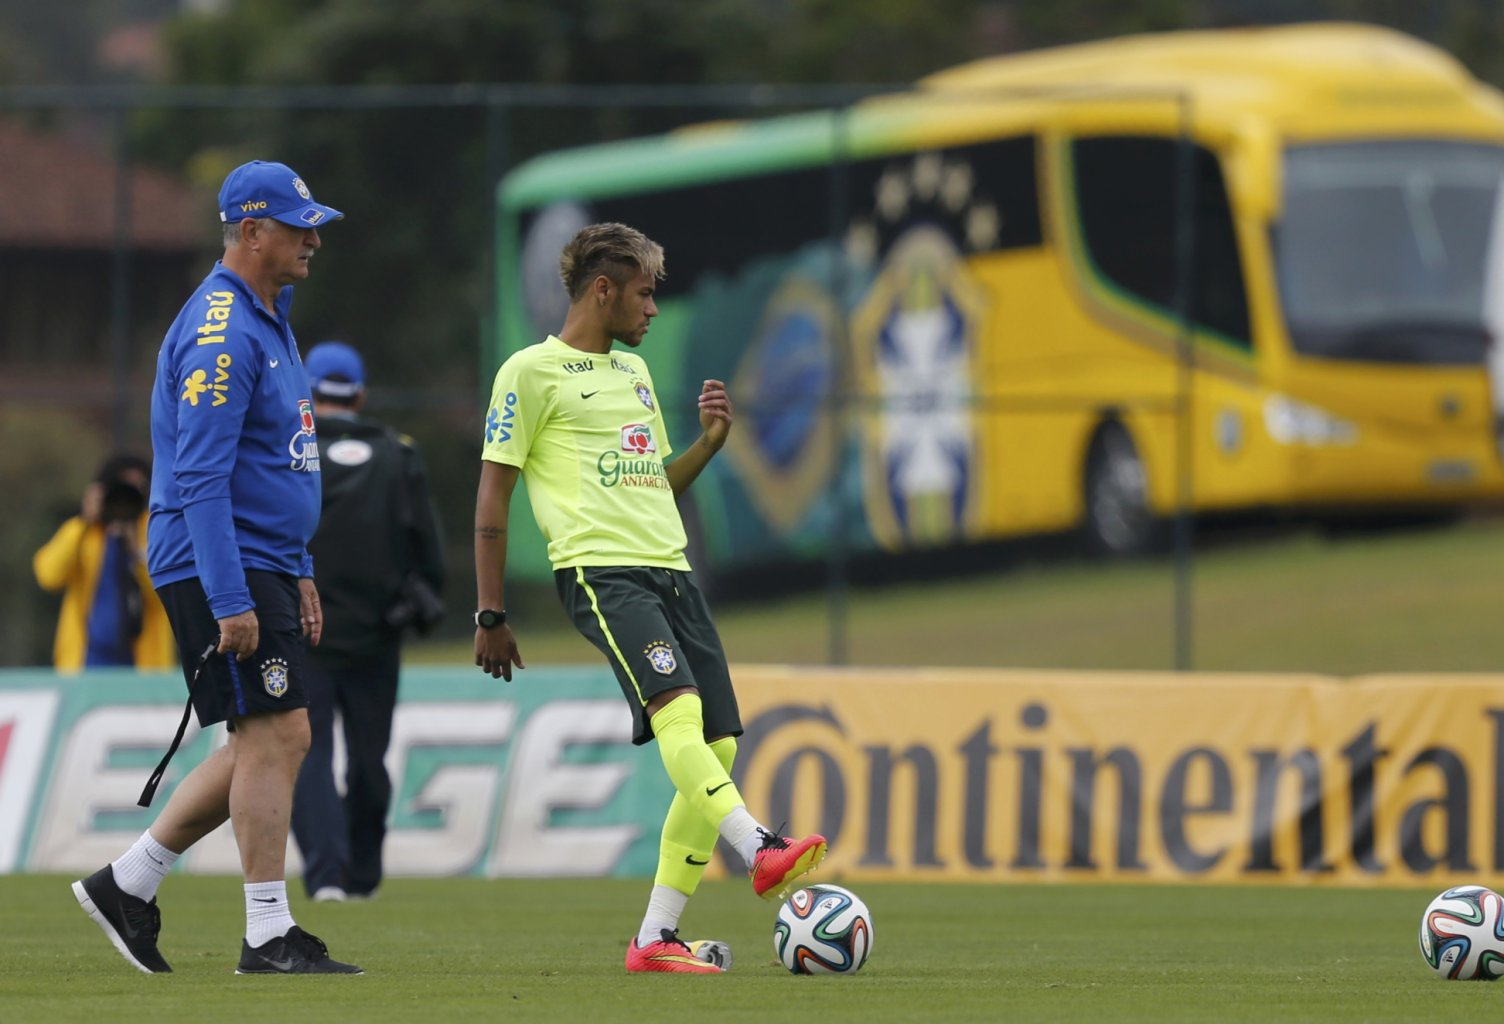 Neymar's new haircut and look in Brazil's World Cup 2014